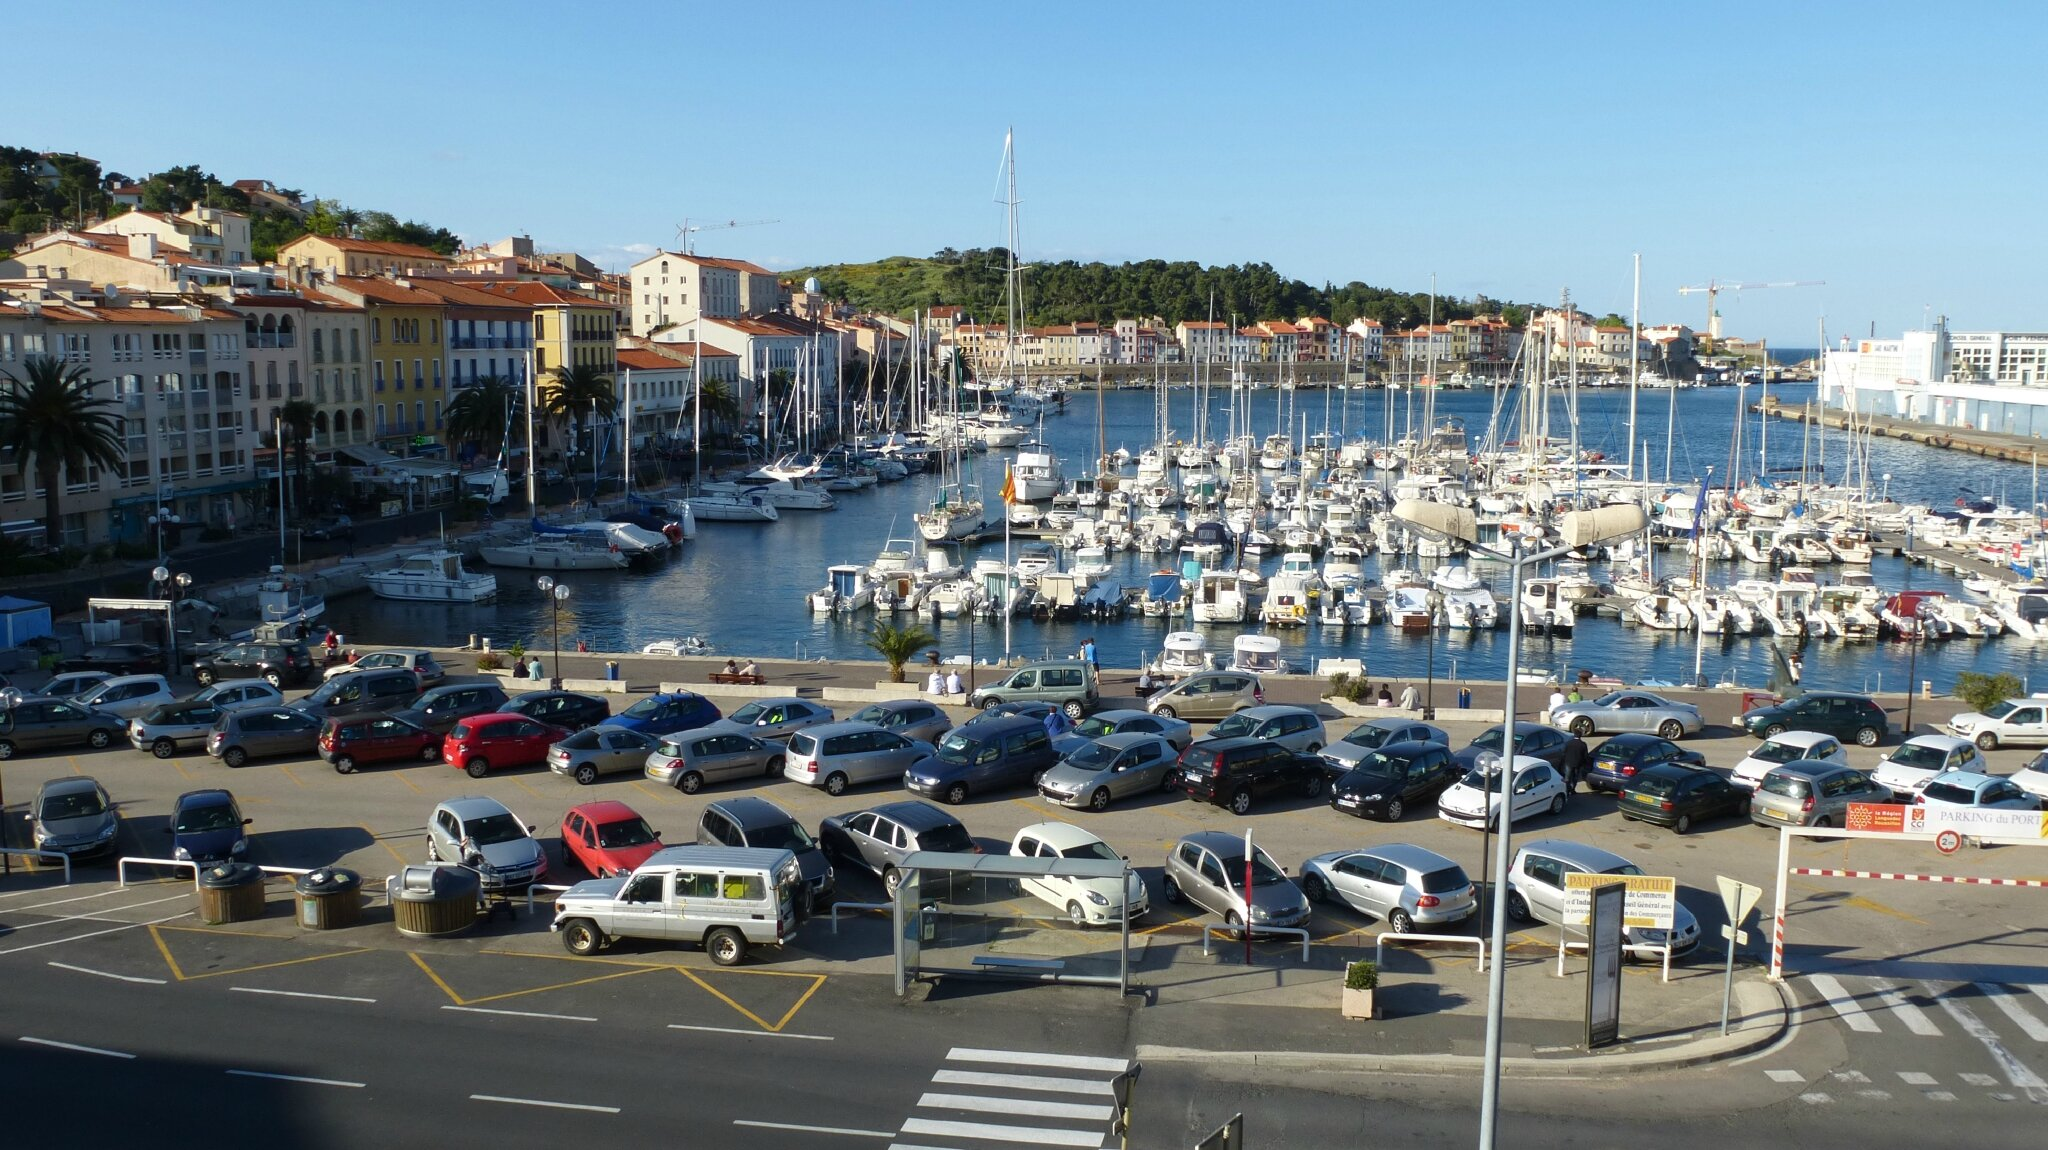 le de la c 244 te vermeille port vendres trotting